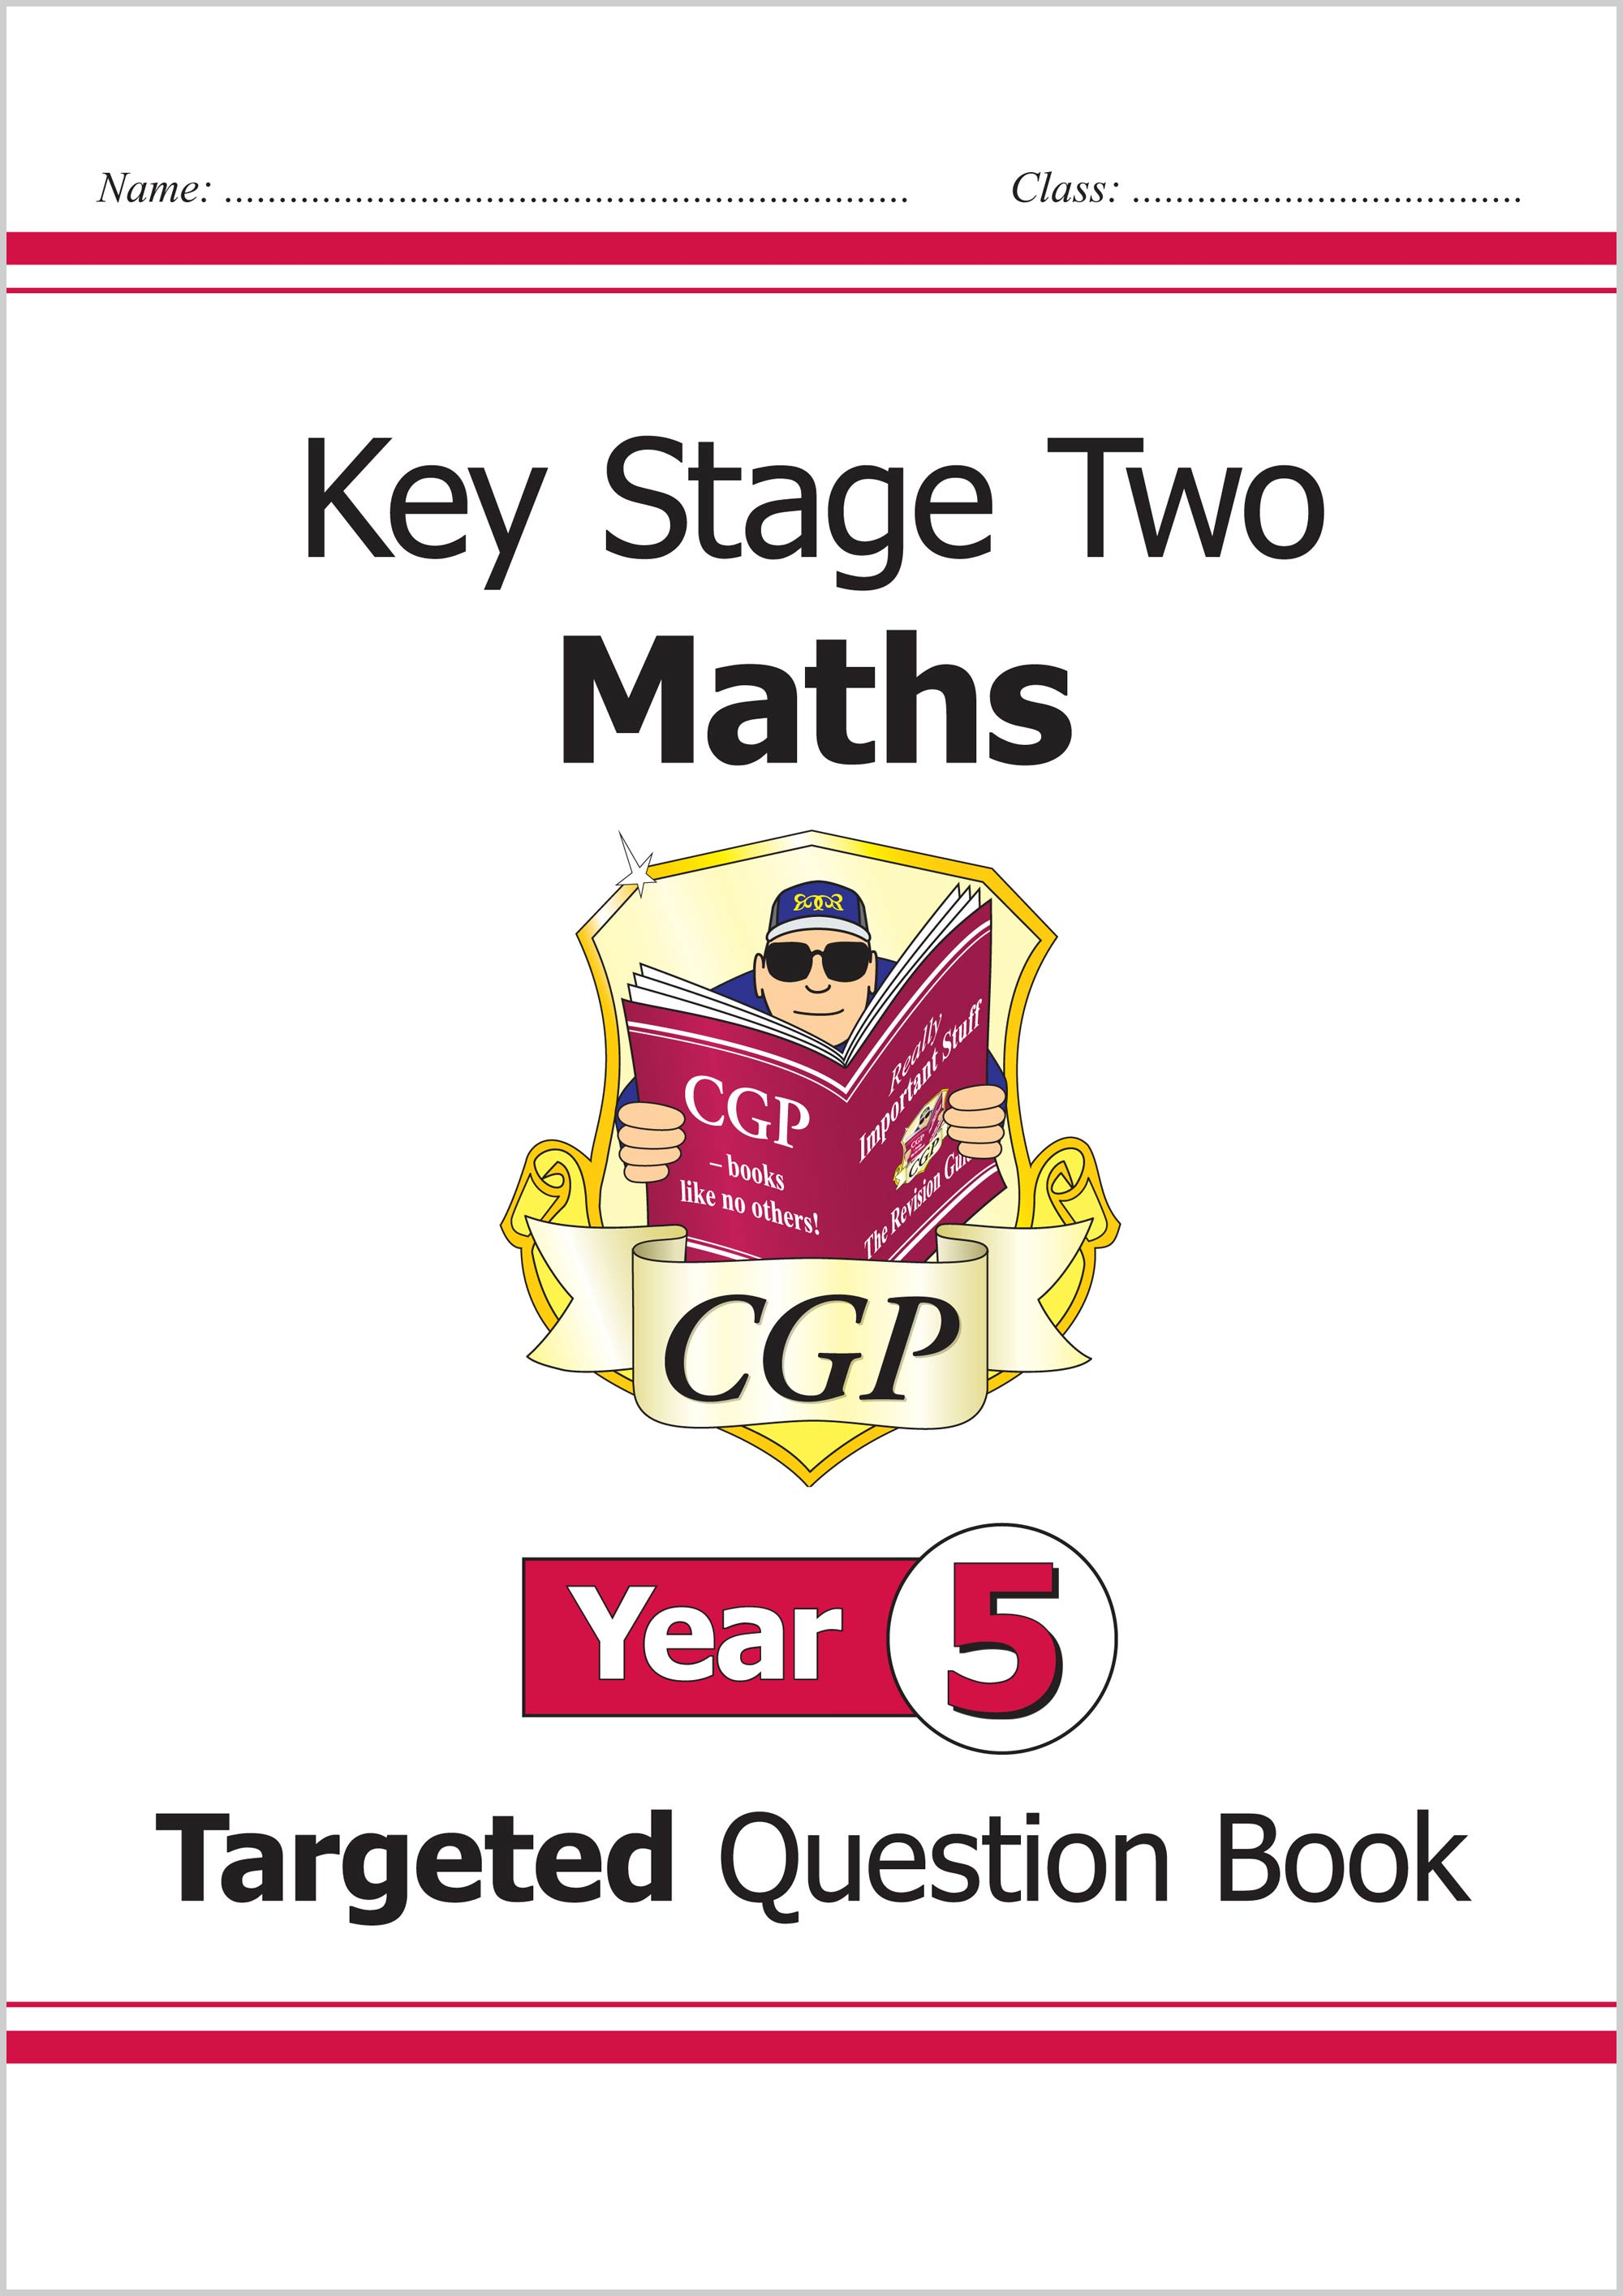 M5Q24 - KS2 Maths Targeted Question Book - Year 5